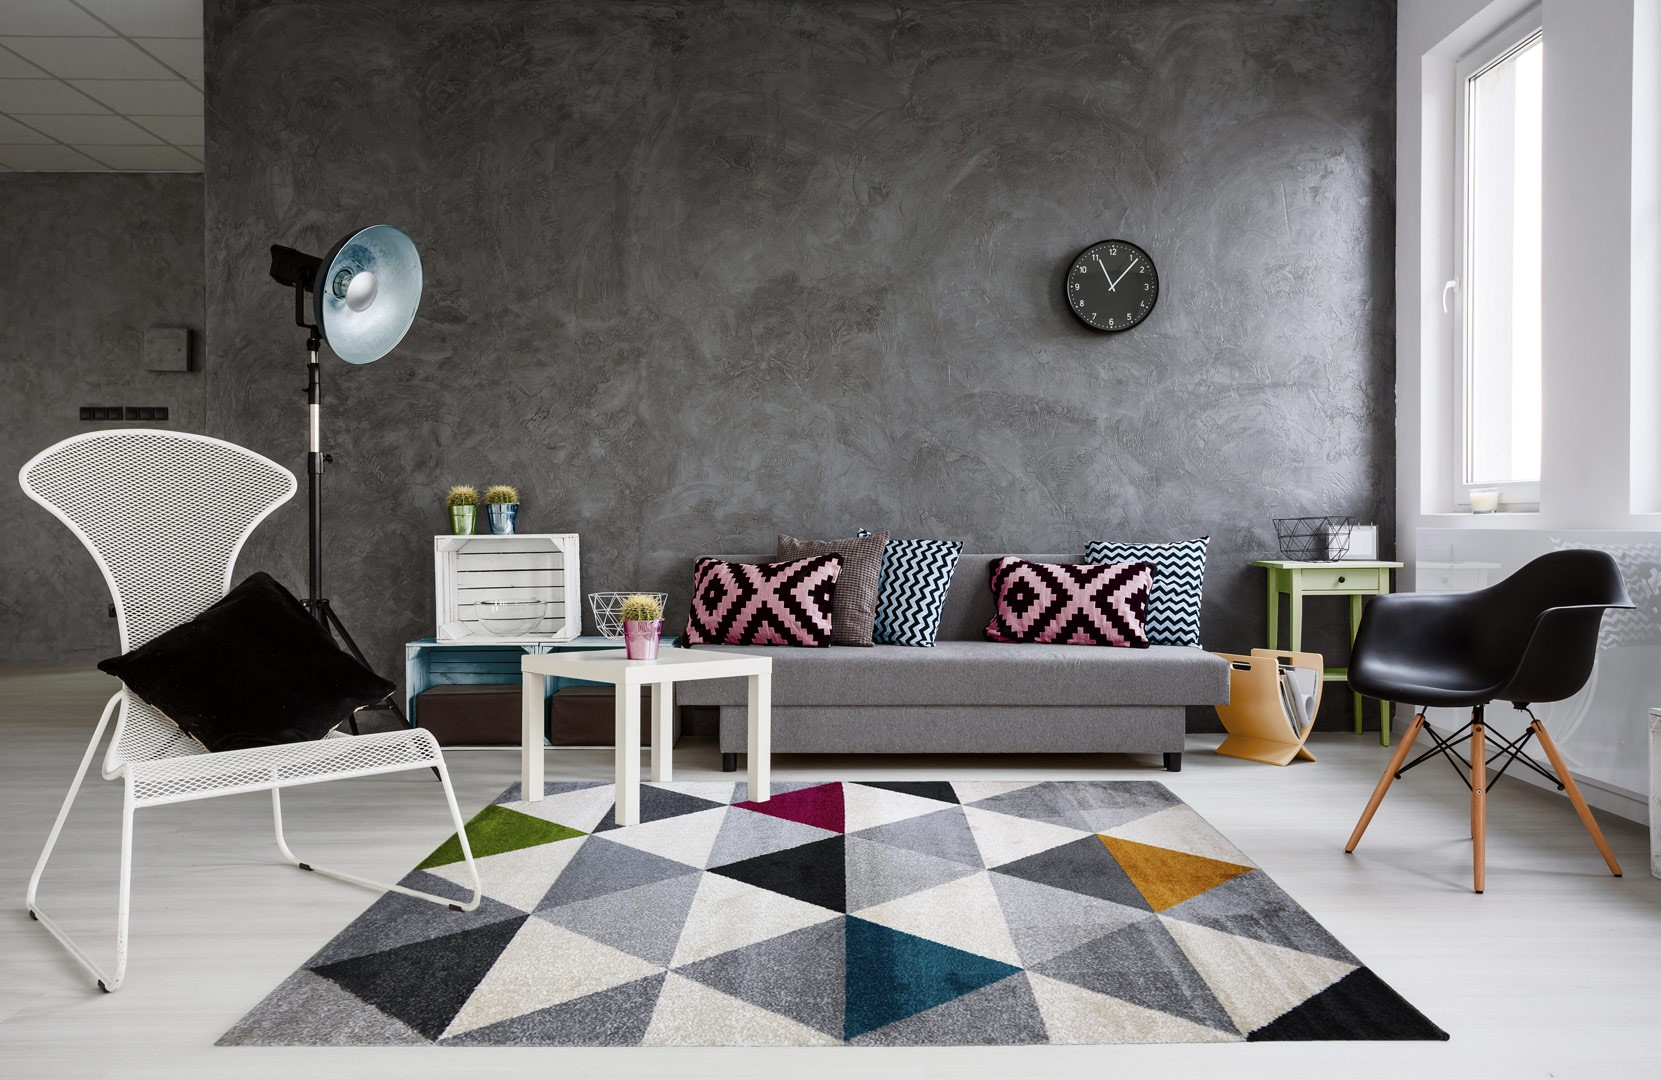 tapis g om trique style scandinave multicolore pour salon gomi. Black Bedroom Furniture Sets. Home Design Ideas